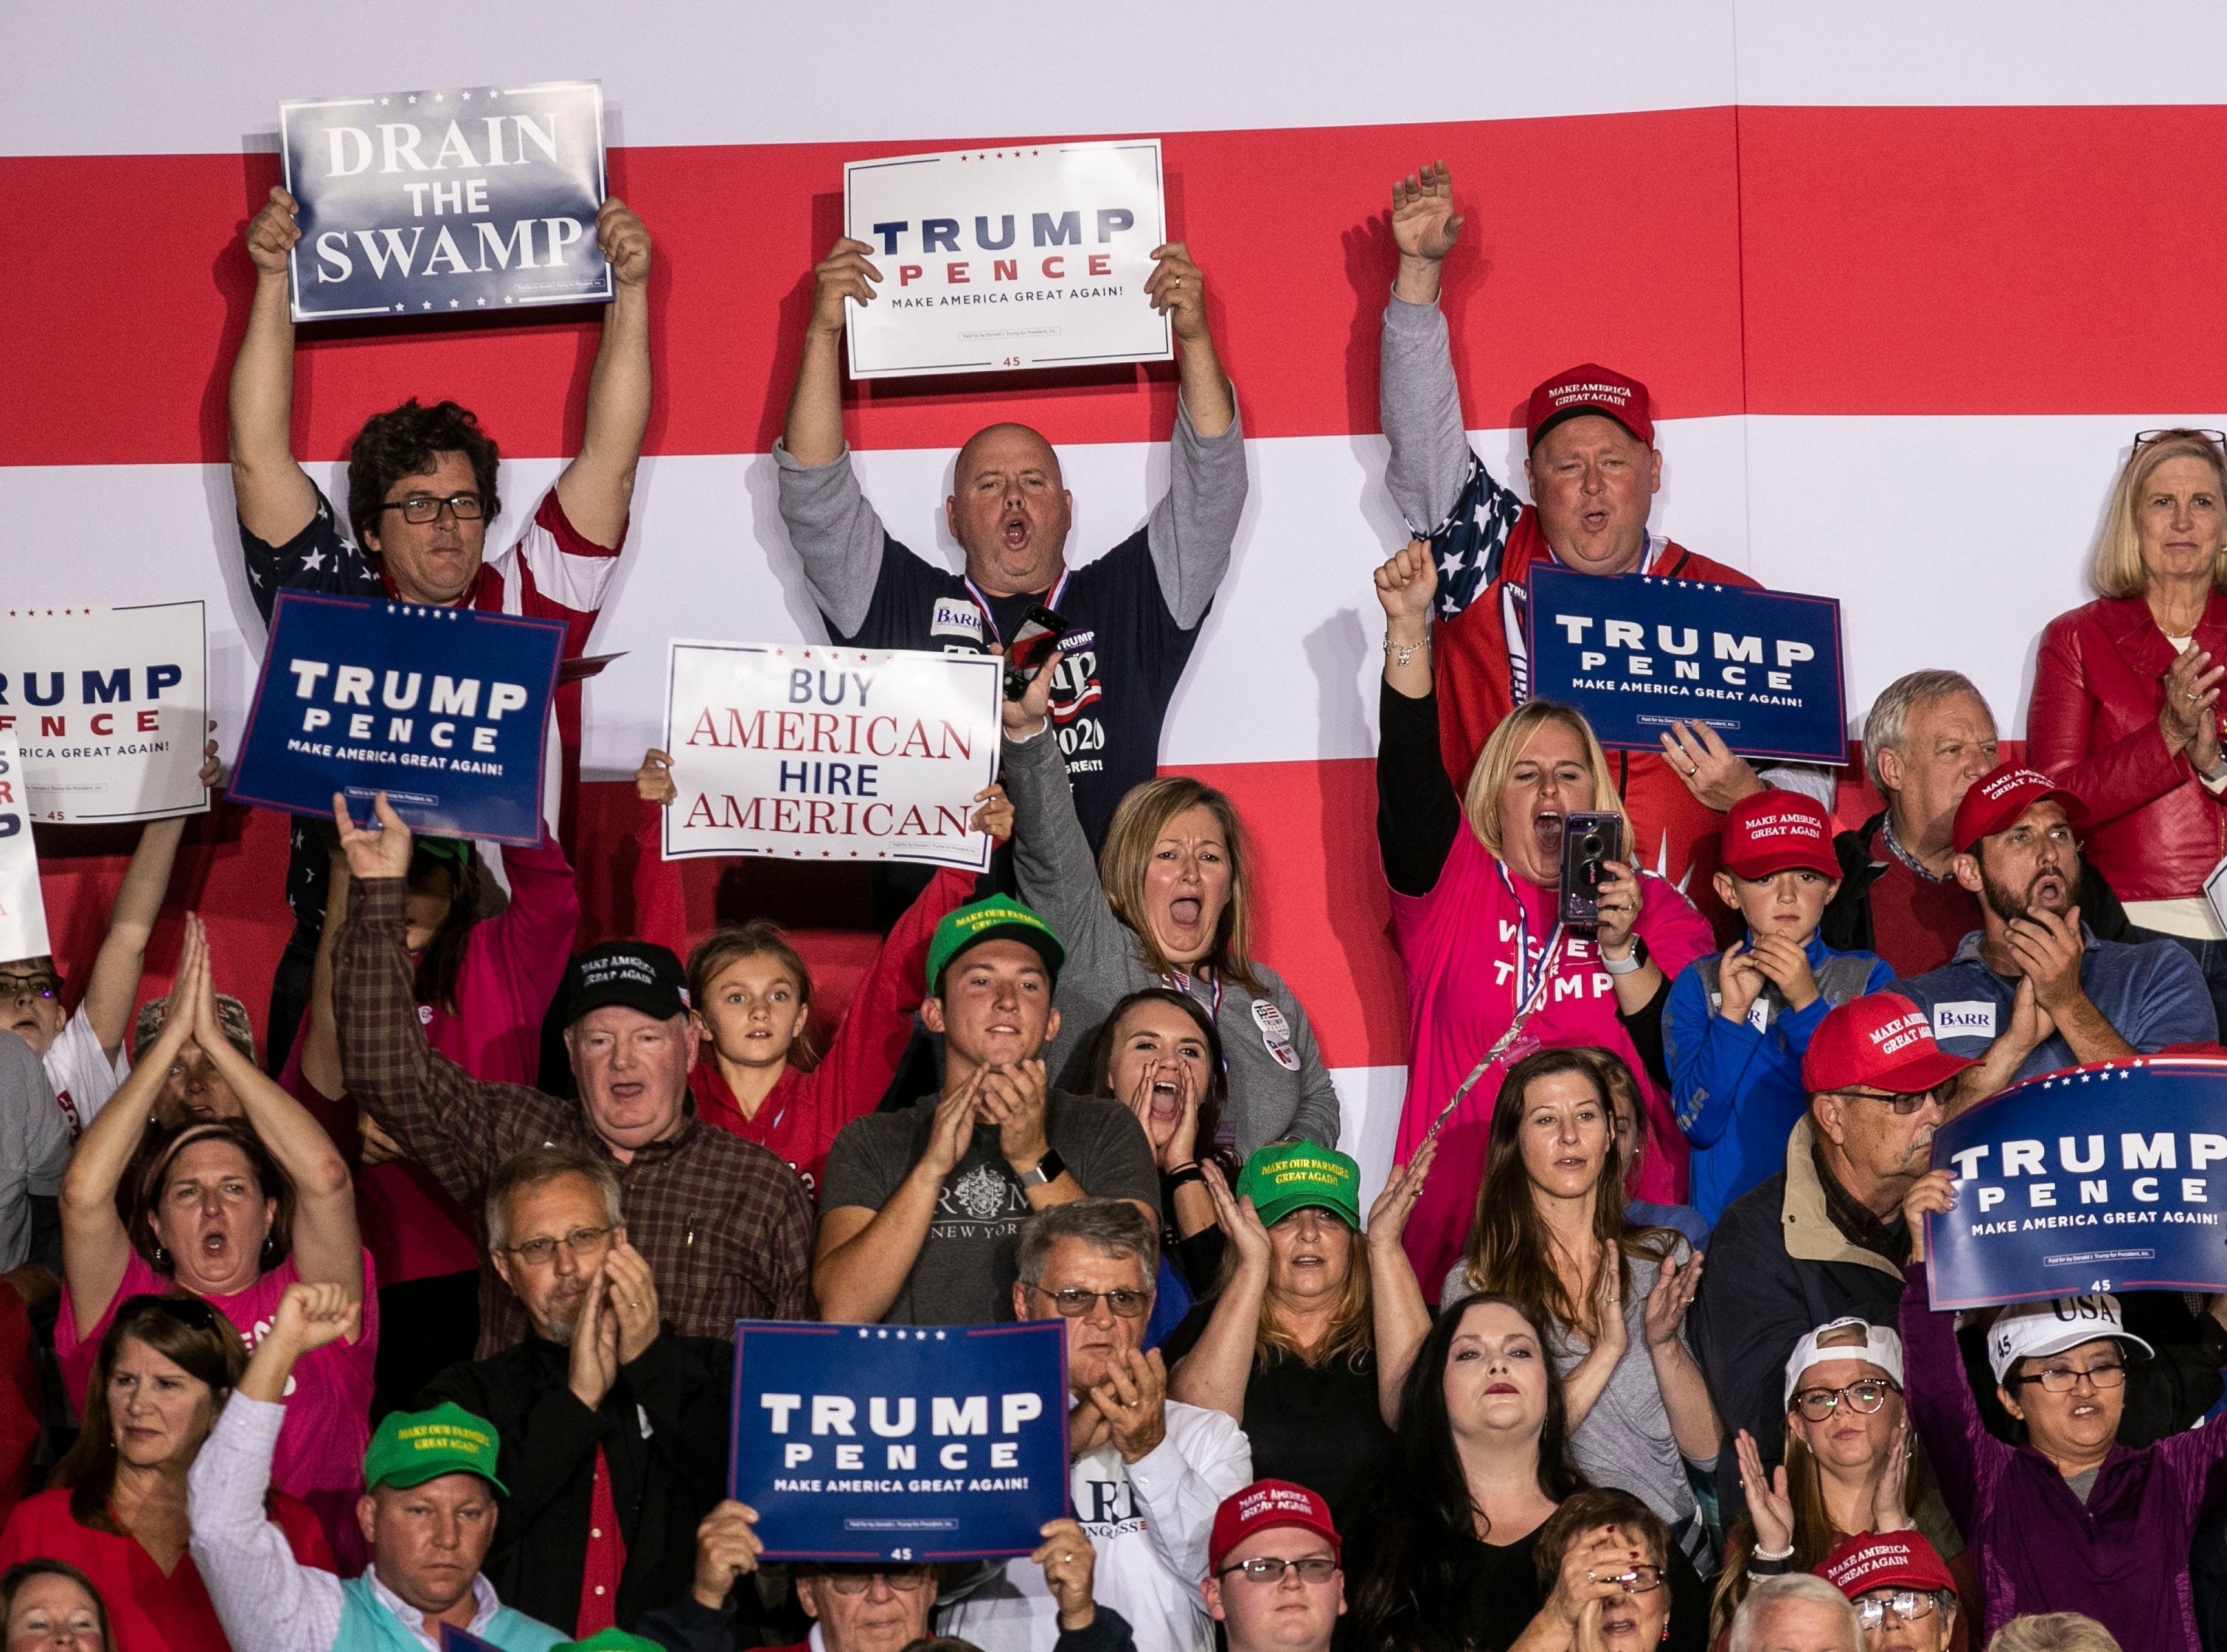 The crowd cheers during President Donald Trump's speech on the Eastern Kentucky University campus Saturday night.